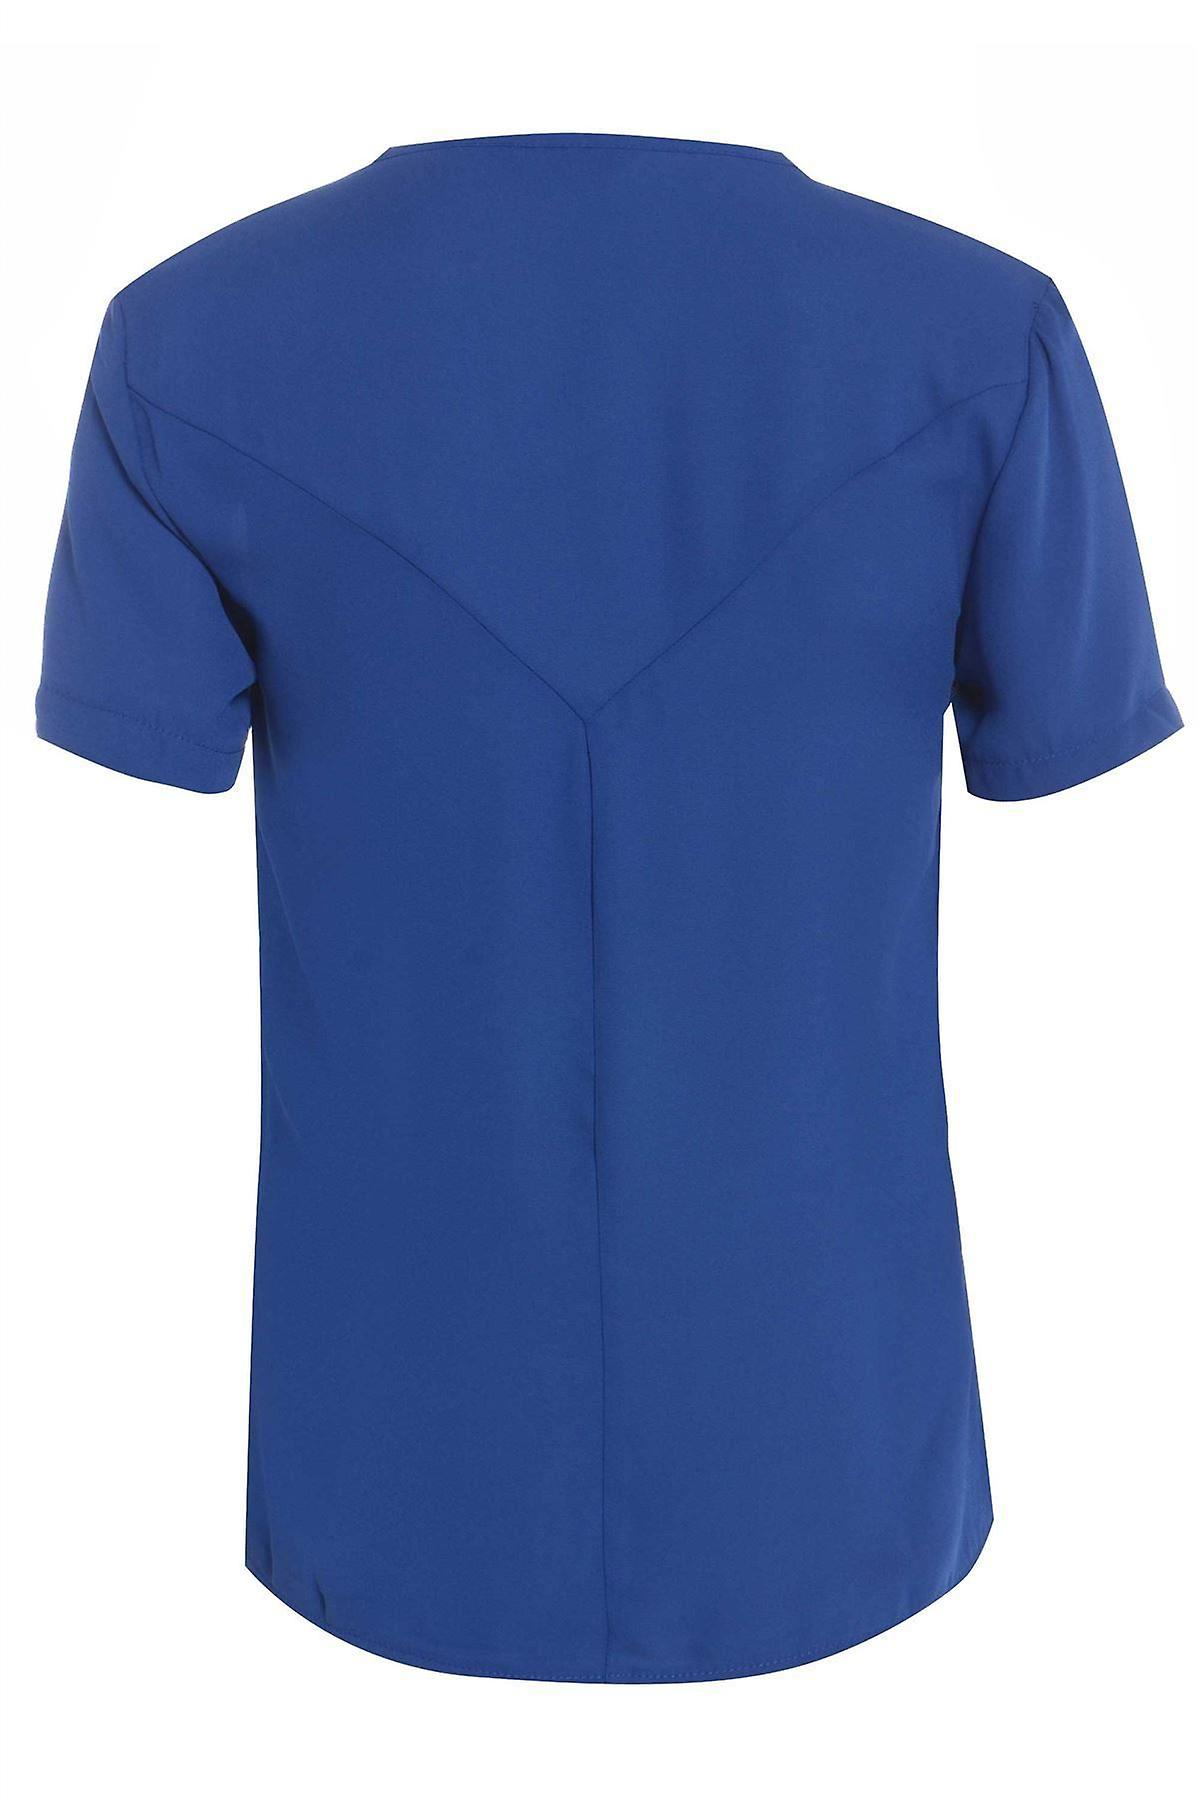 Blue Chiffon Tee With Shoulder Zip Detail TP550-10